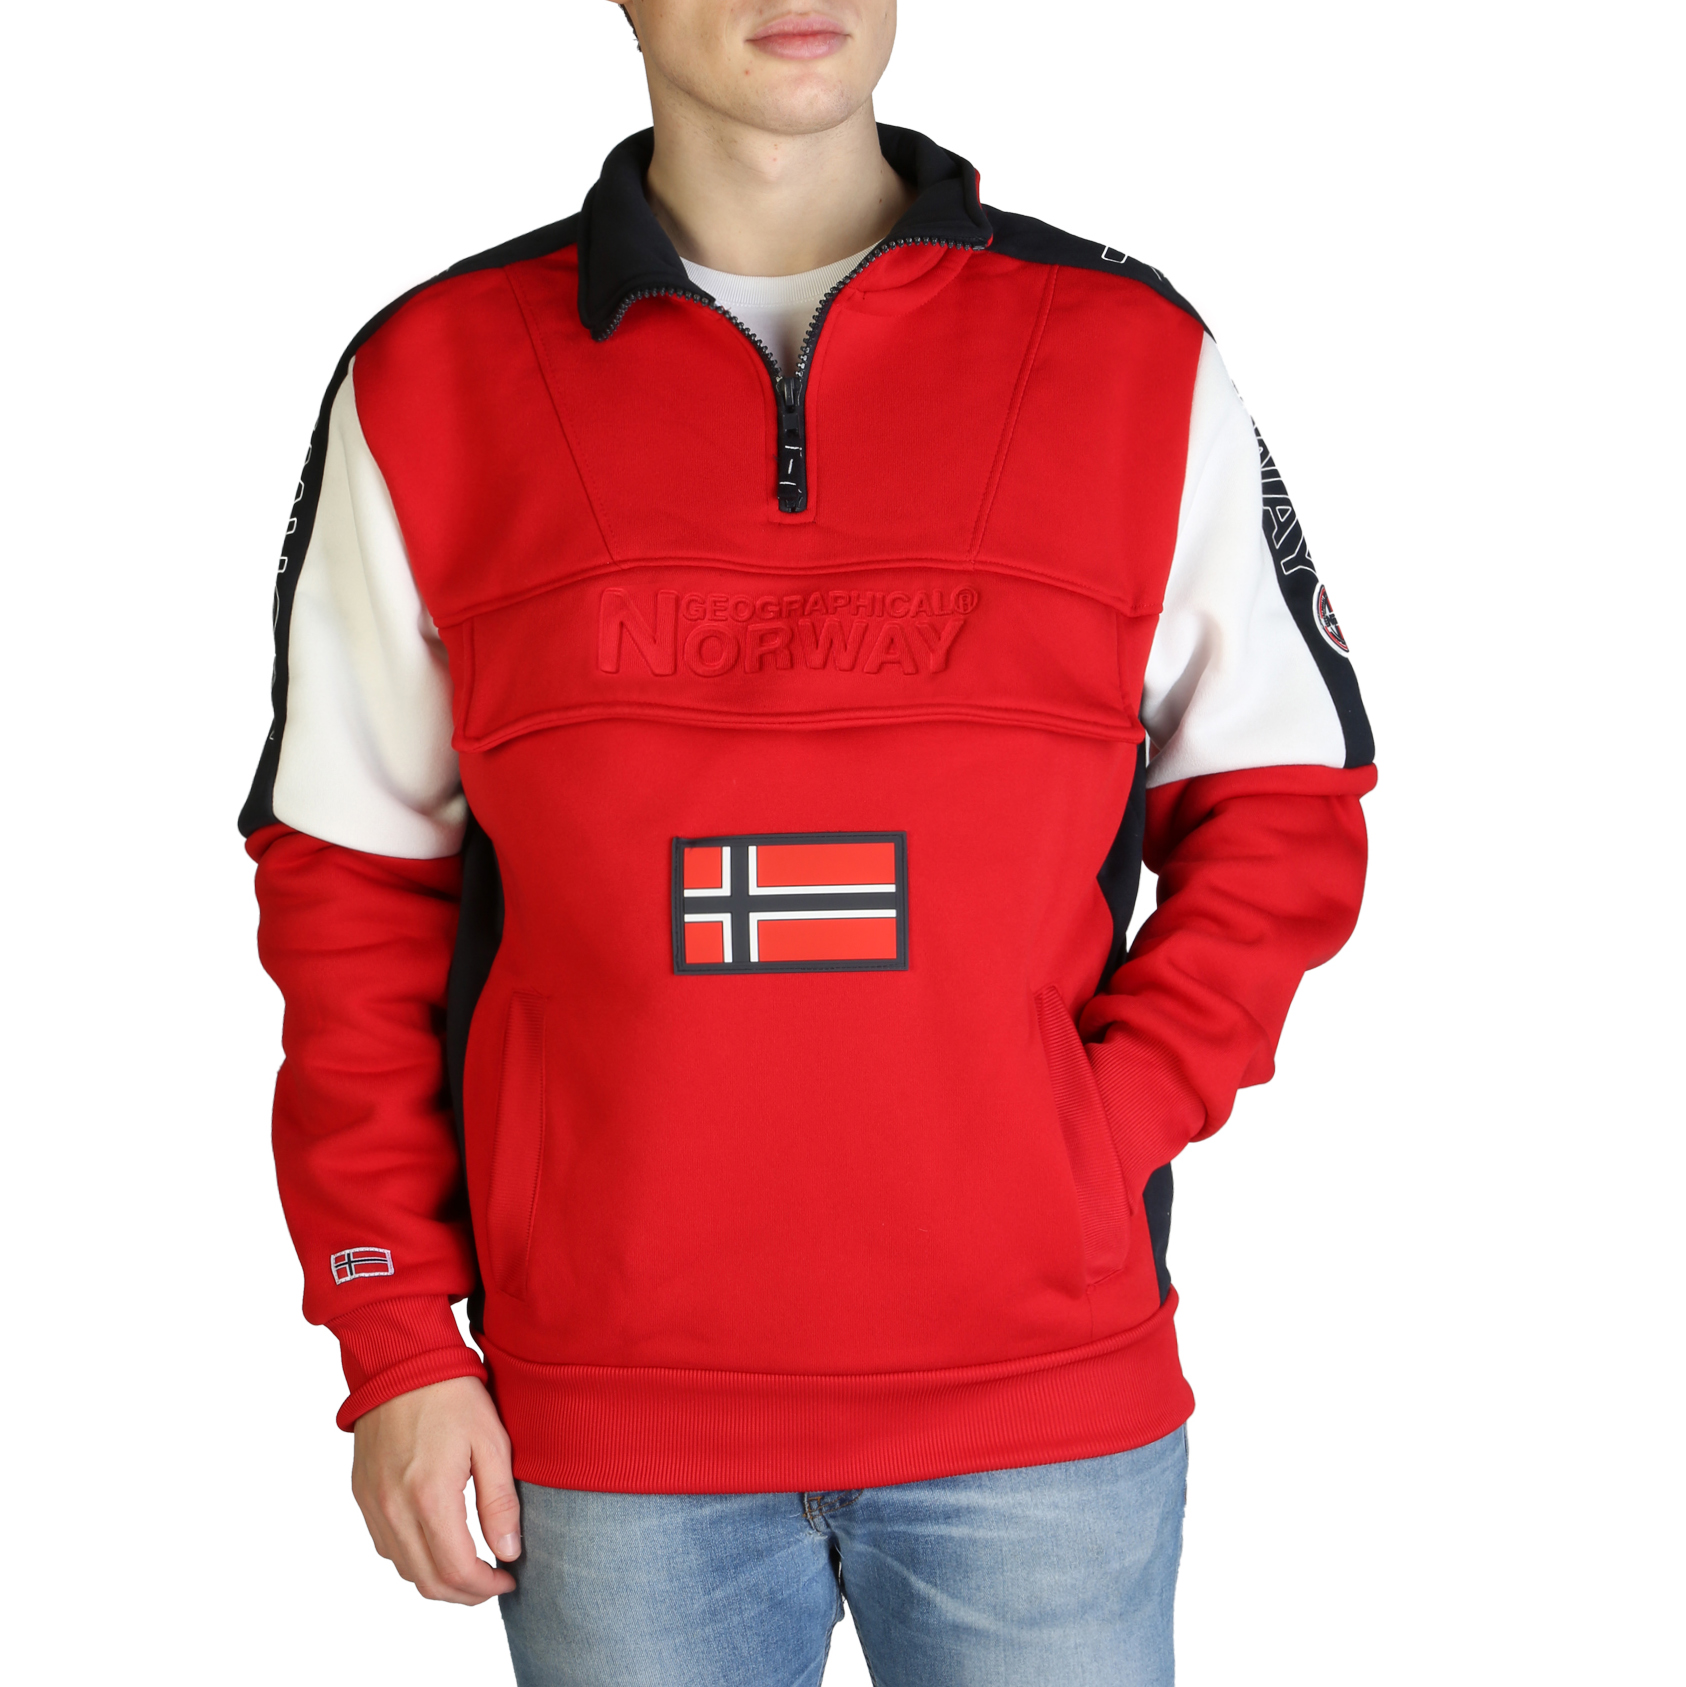 Geographical Norway Fagostino007 man